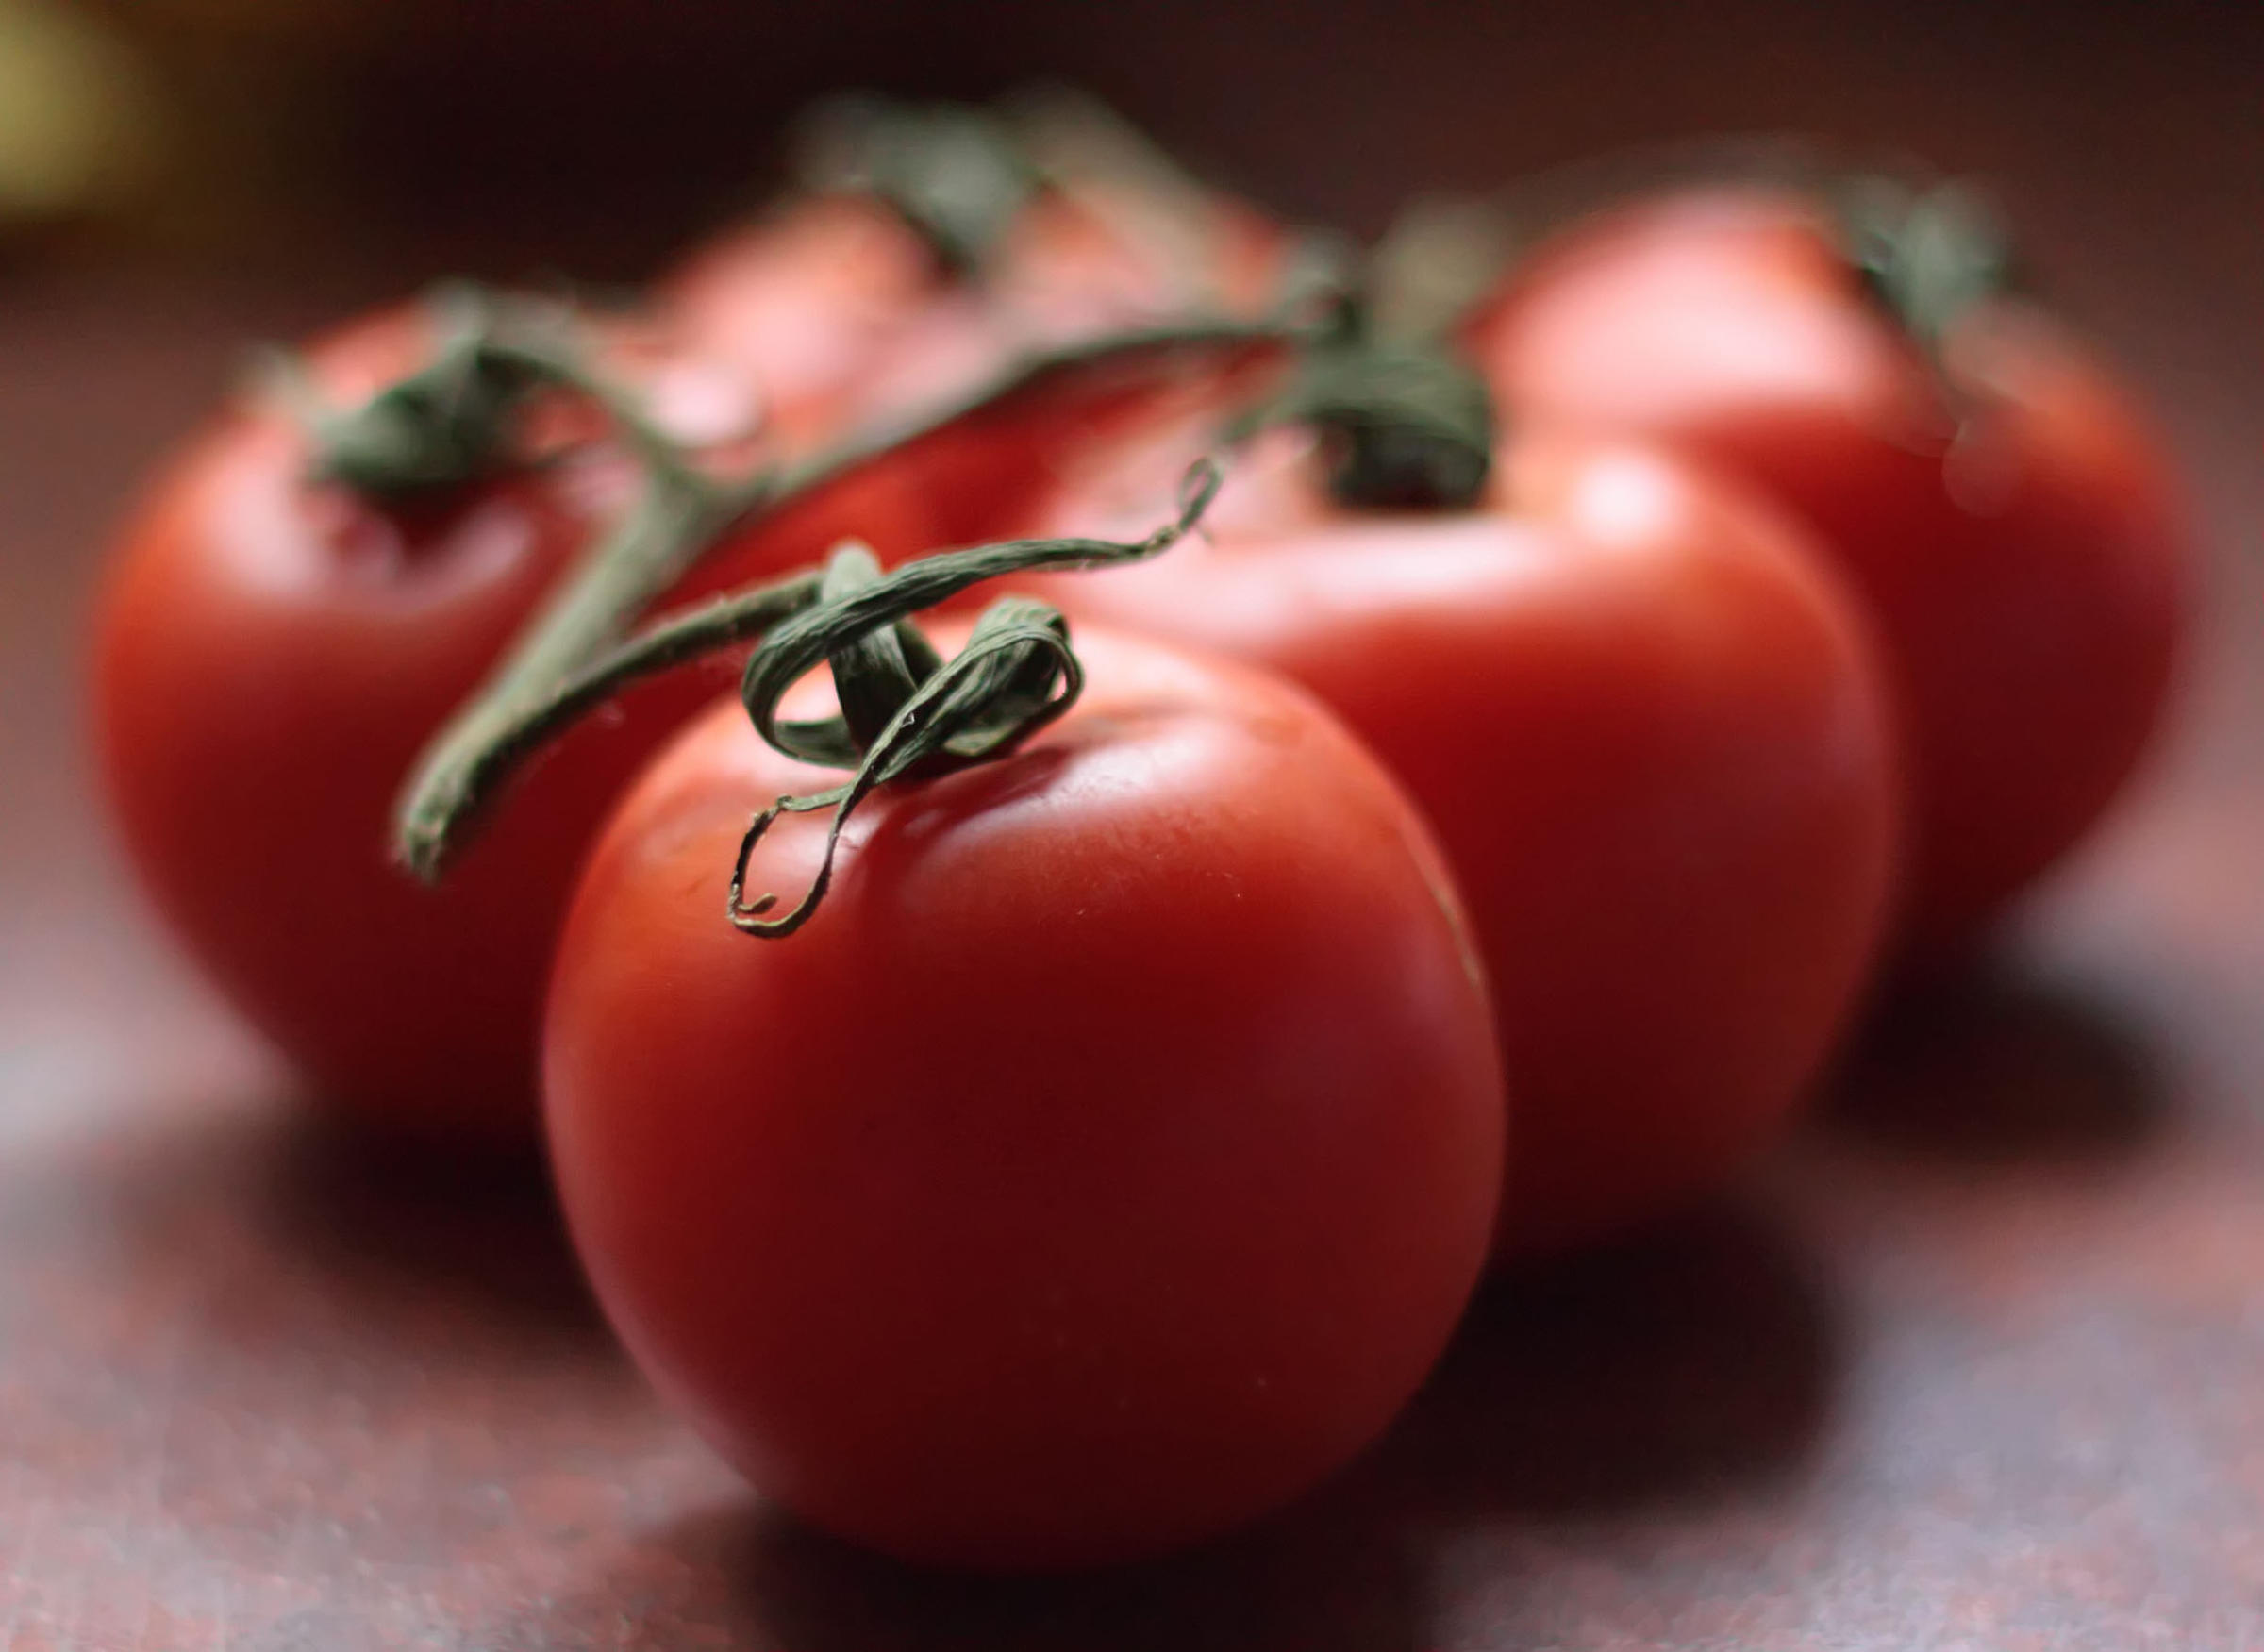 Scientists find new ways to make tomatoes tasty again